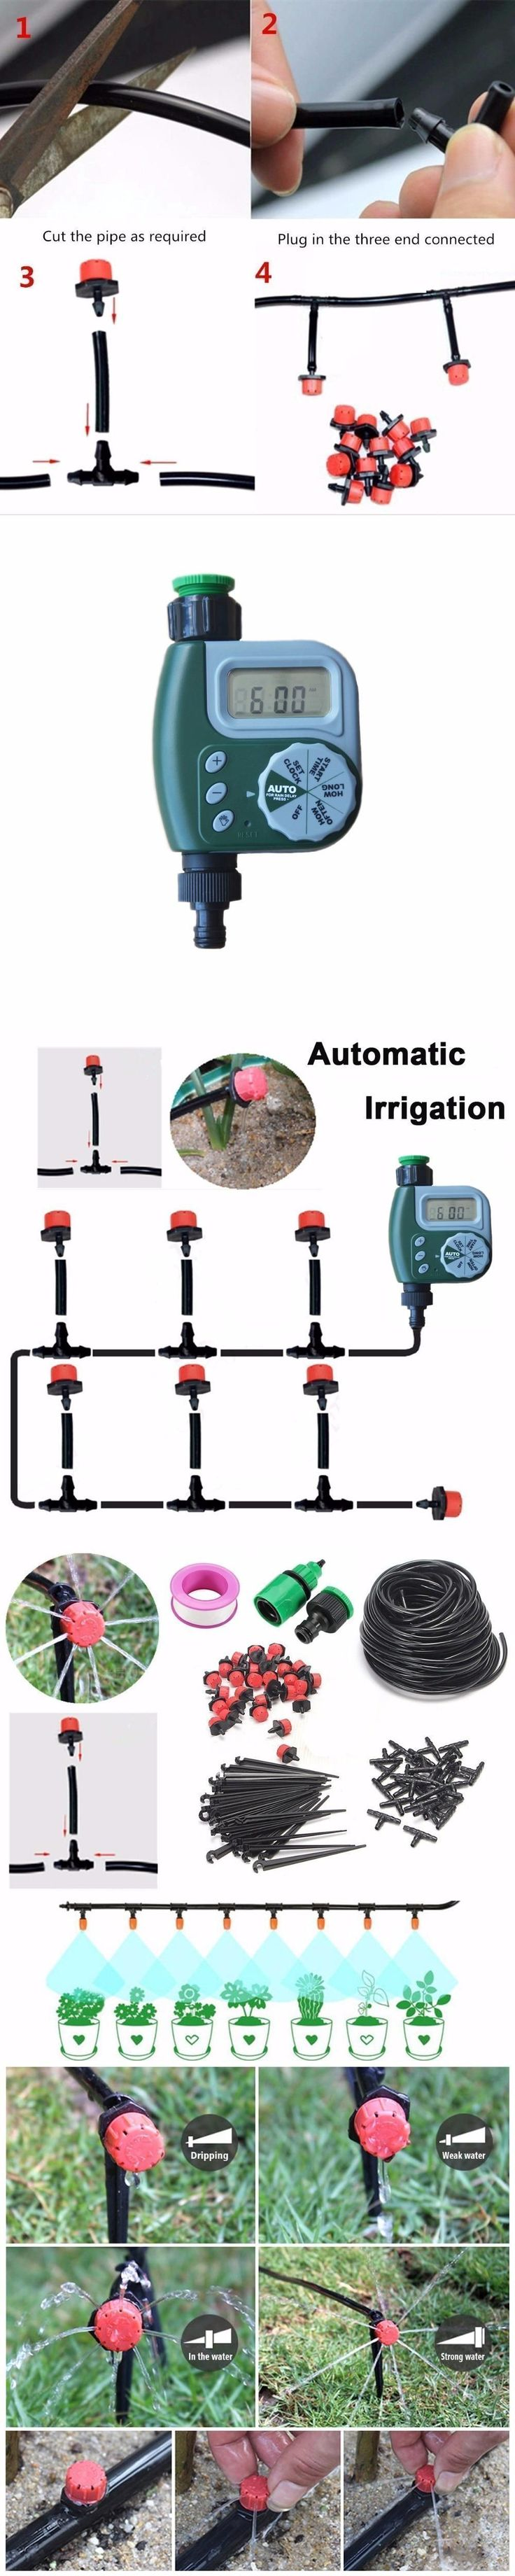 DIY Micro Irrigation Drip System, Plant Self Automatic Watering Timer Garden Hose Kits With Adjustable Dripper #watergardens #WateringTimers